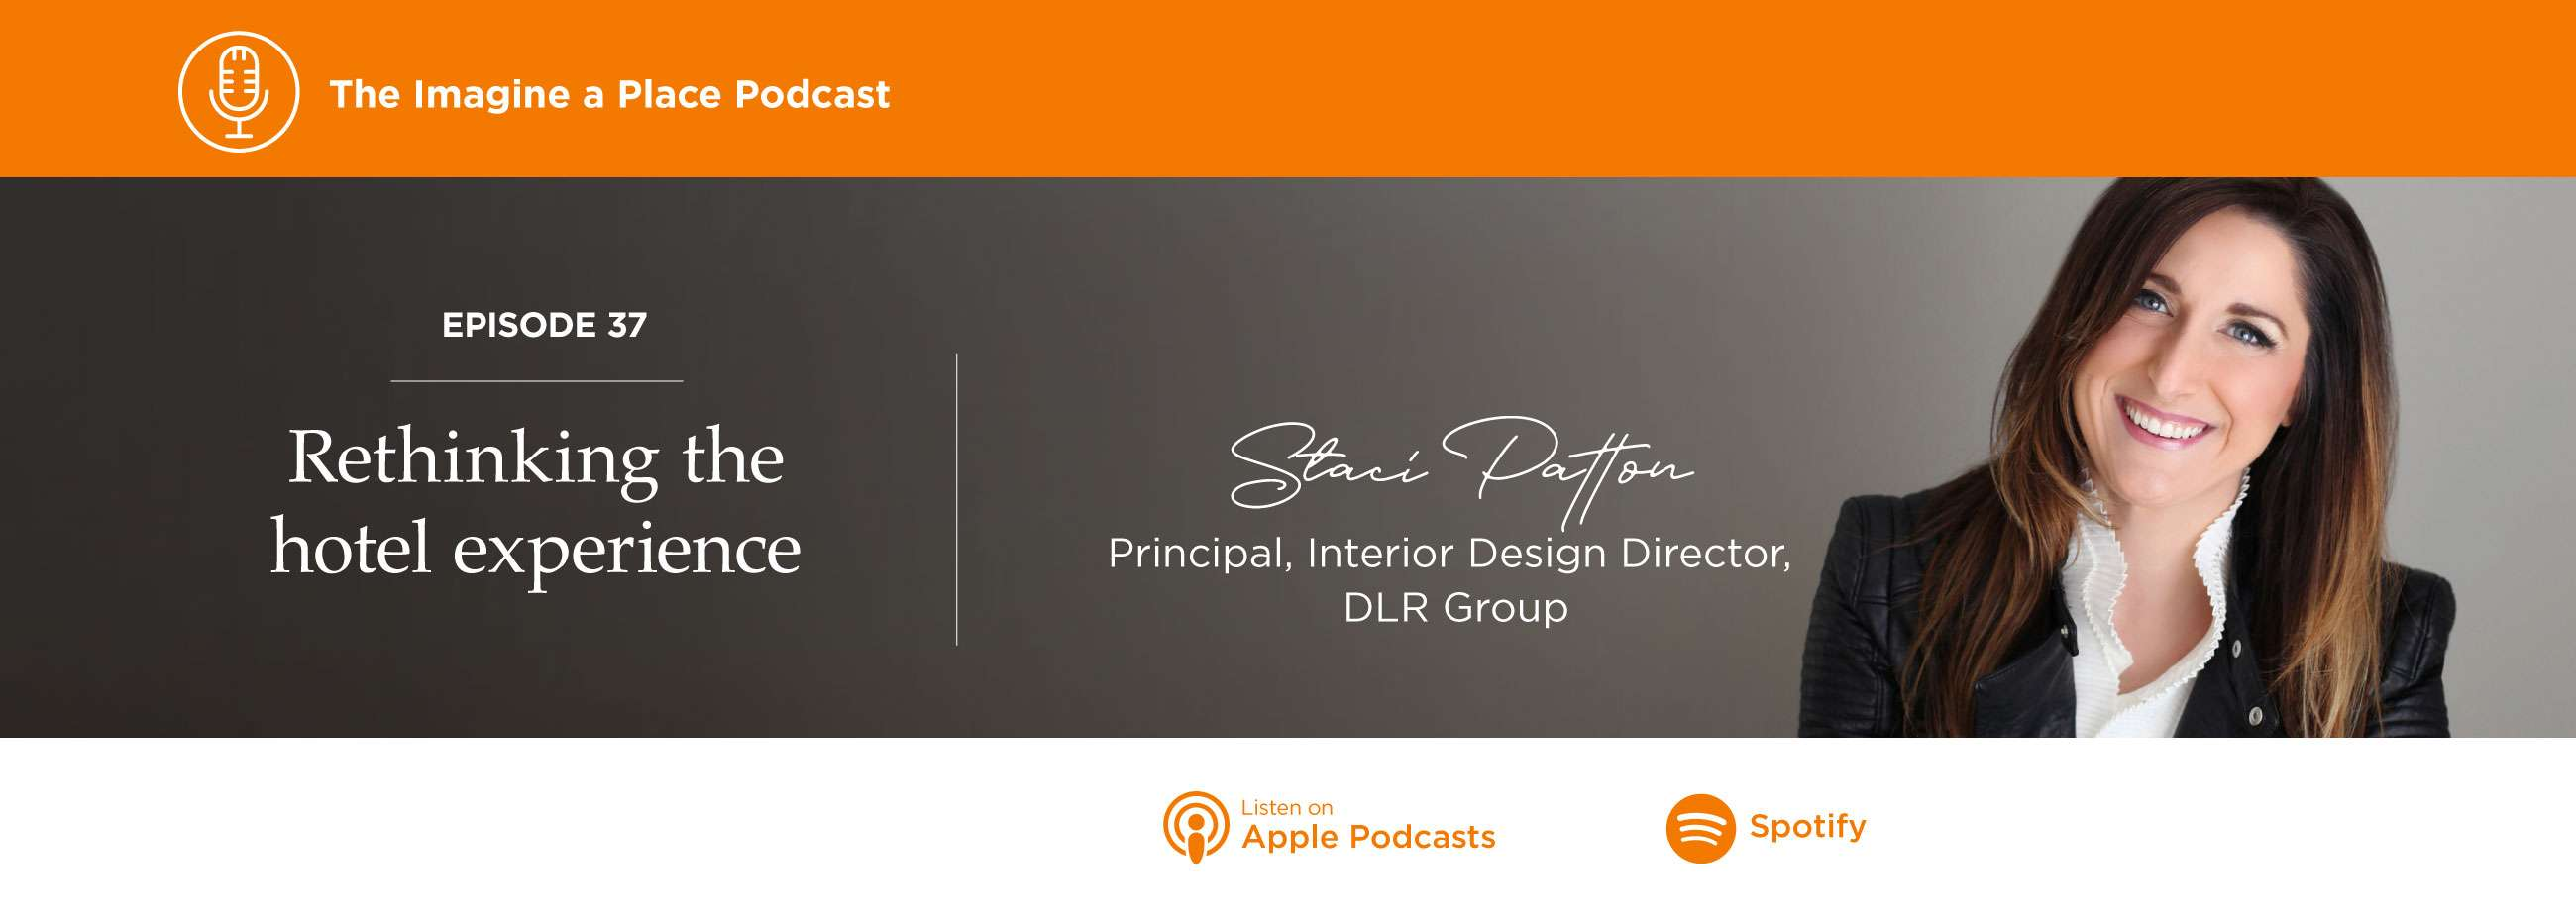 Imagine a Place Podcast with Staci Patton of DLR Group